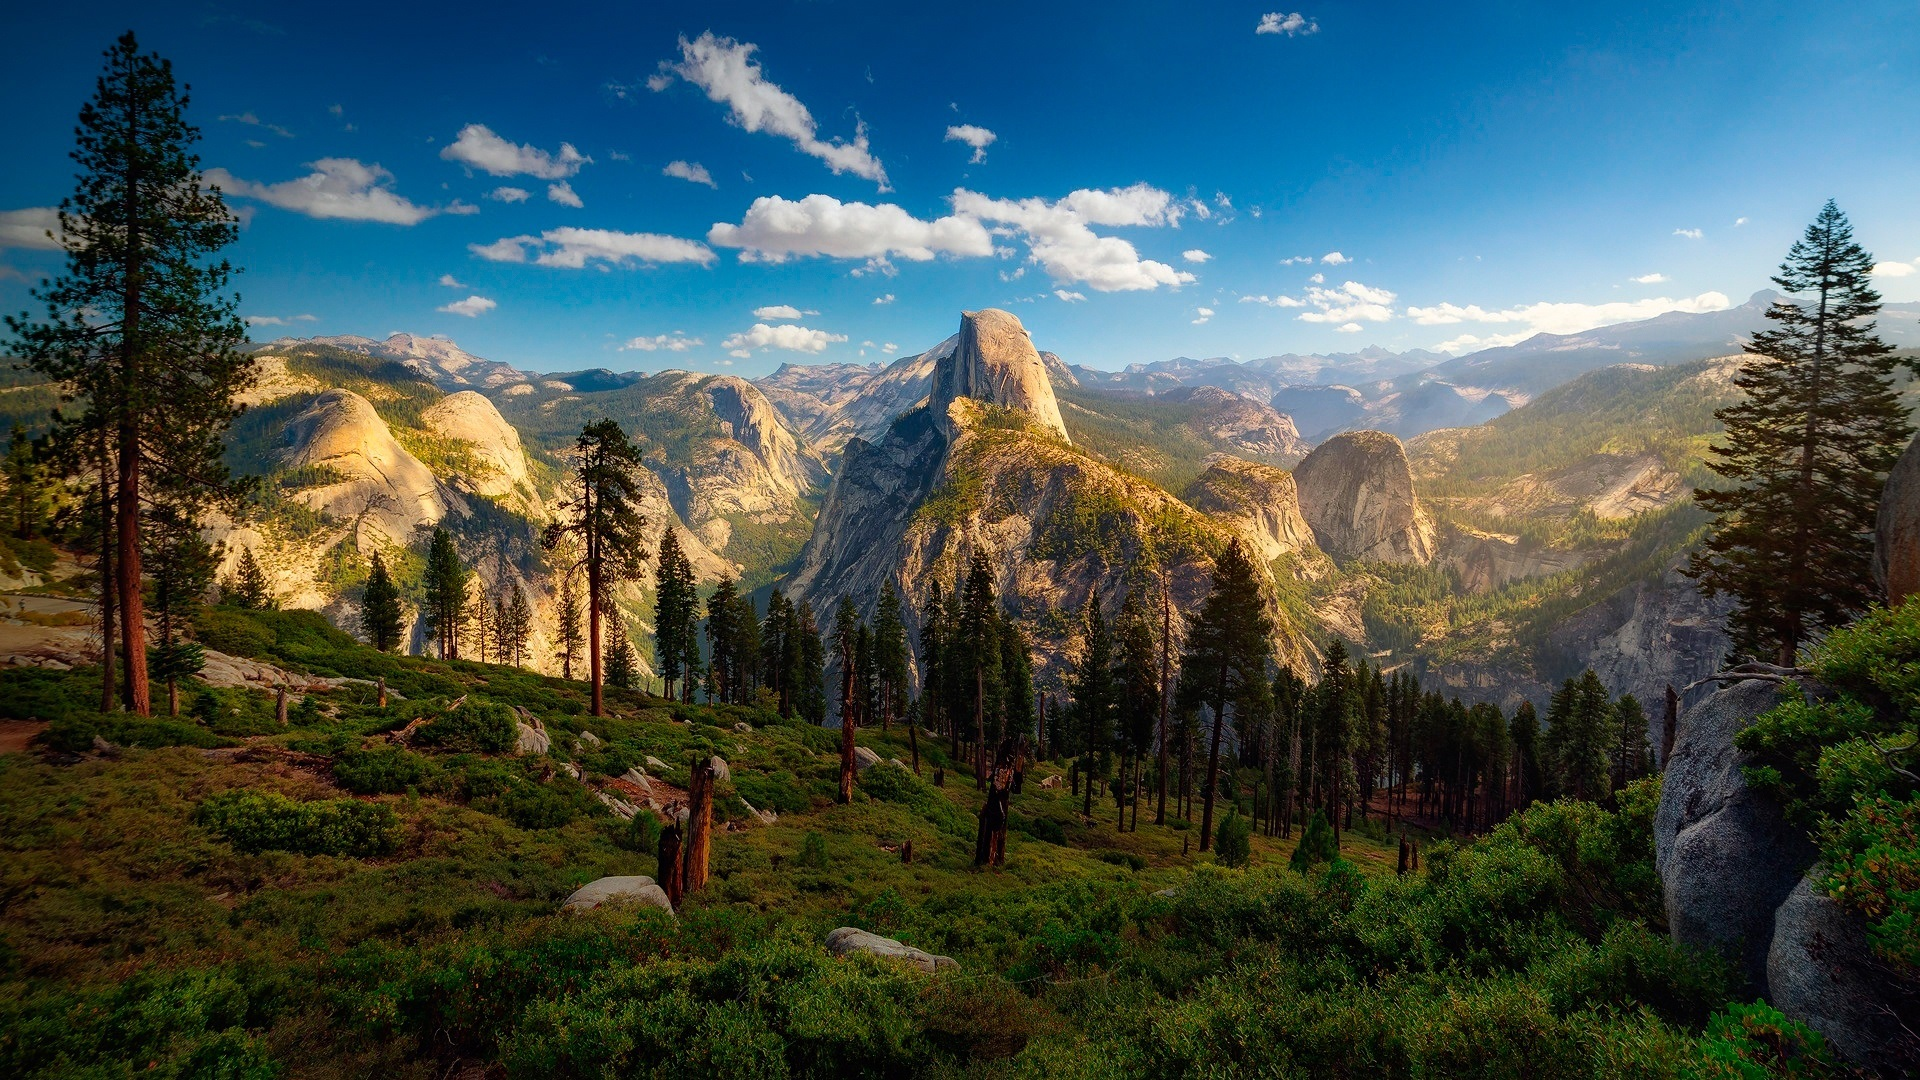 USA, Yosemite National Park, forest, trees, mountain ...